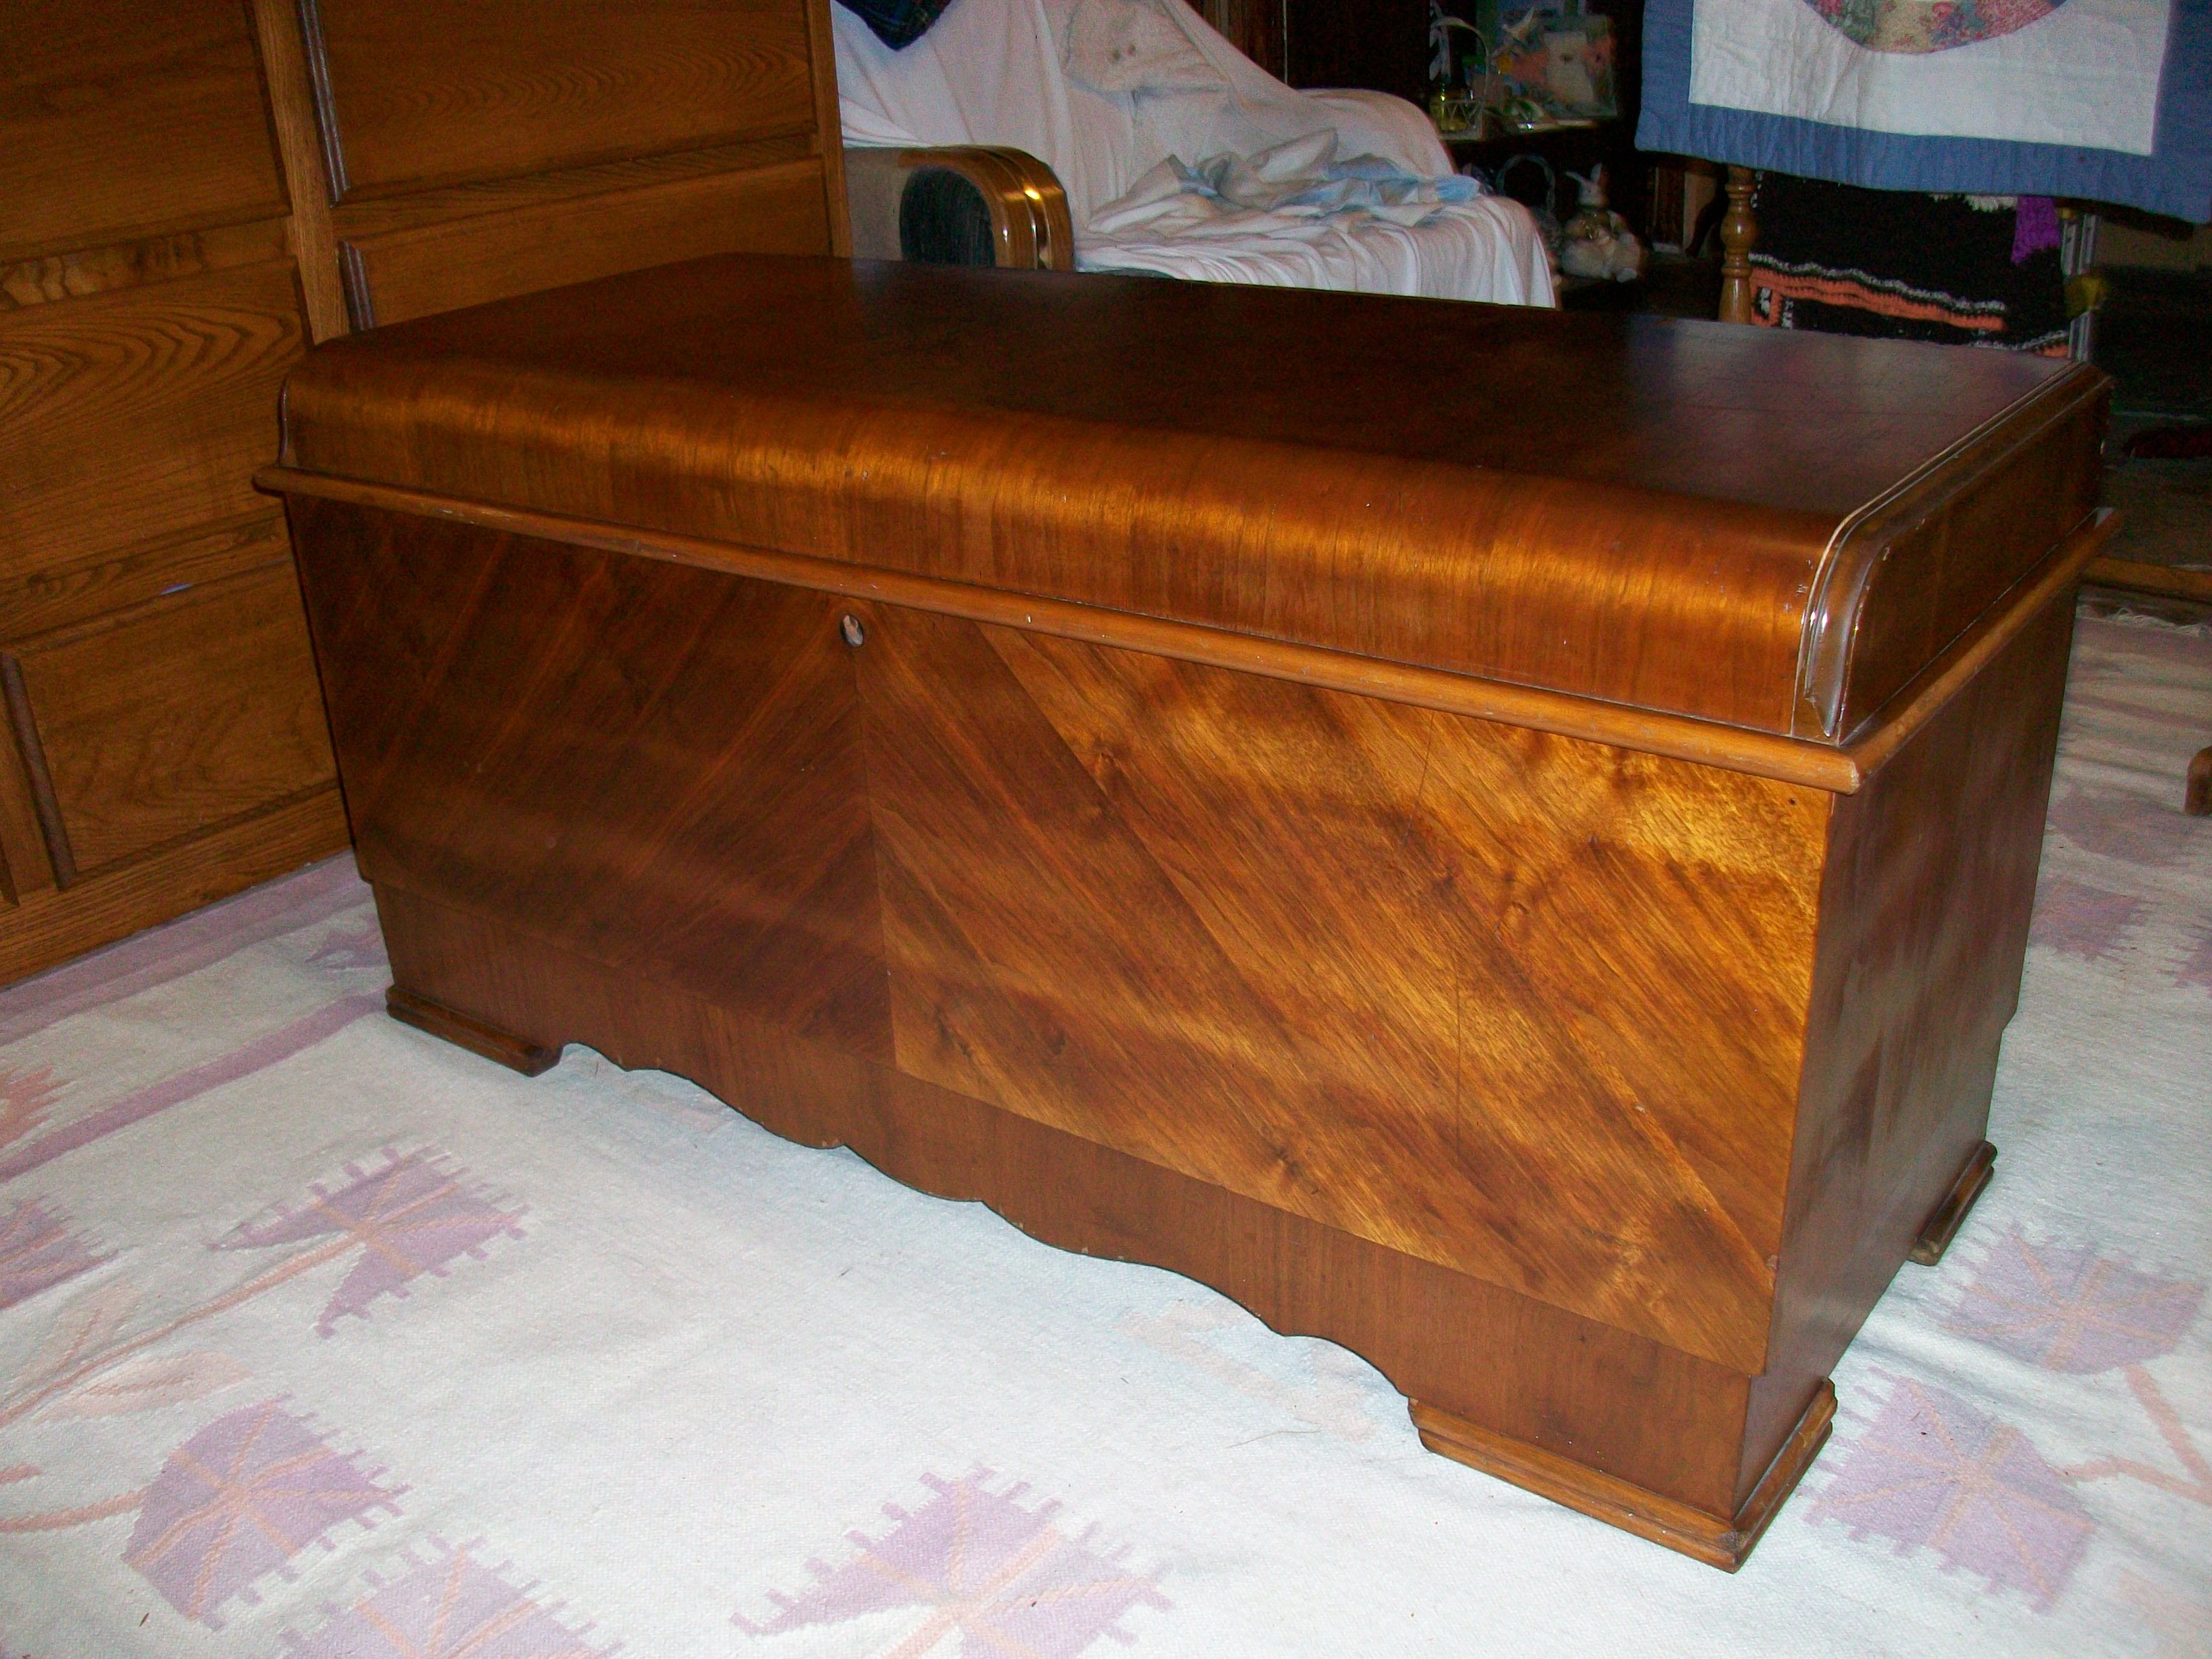 Lane Waterfall Cedar Chest I Have One Exactly Like This That